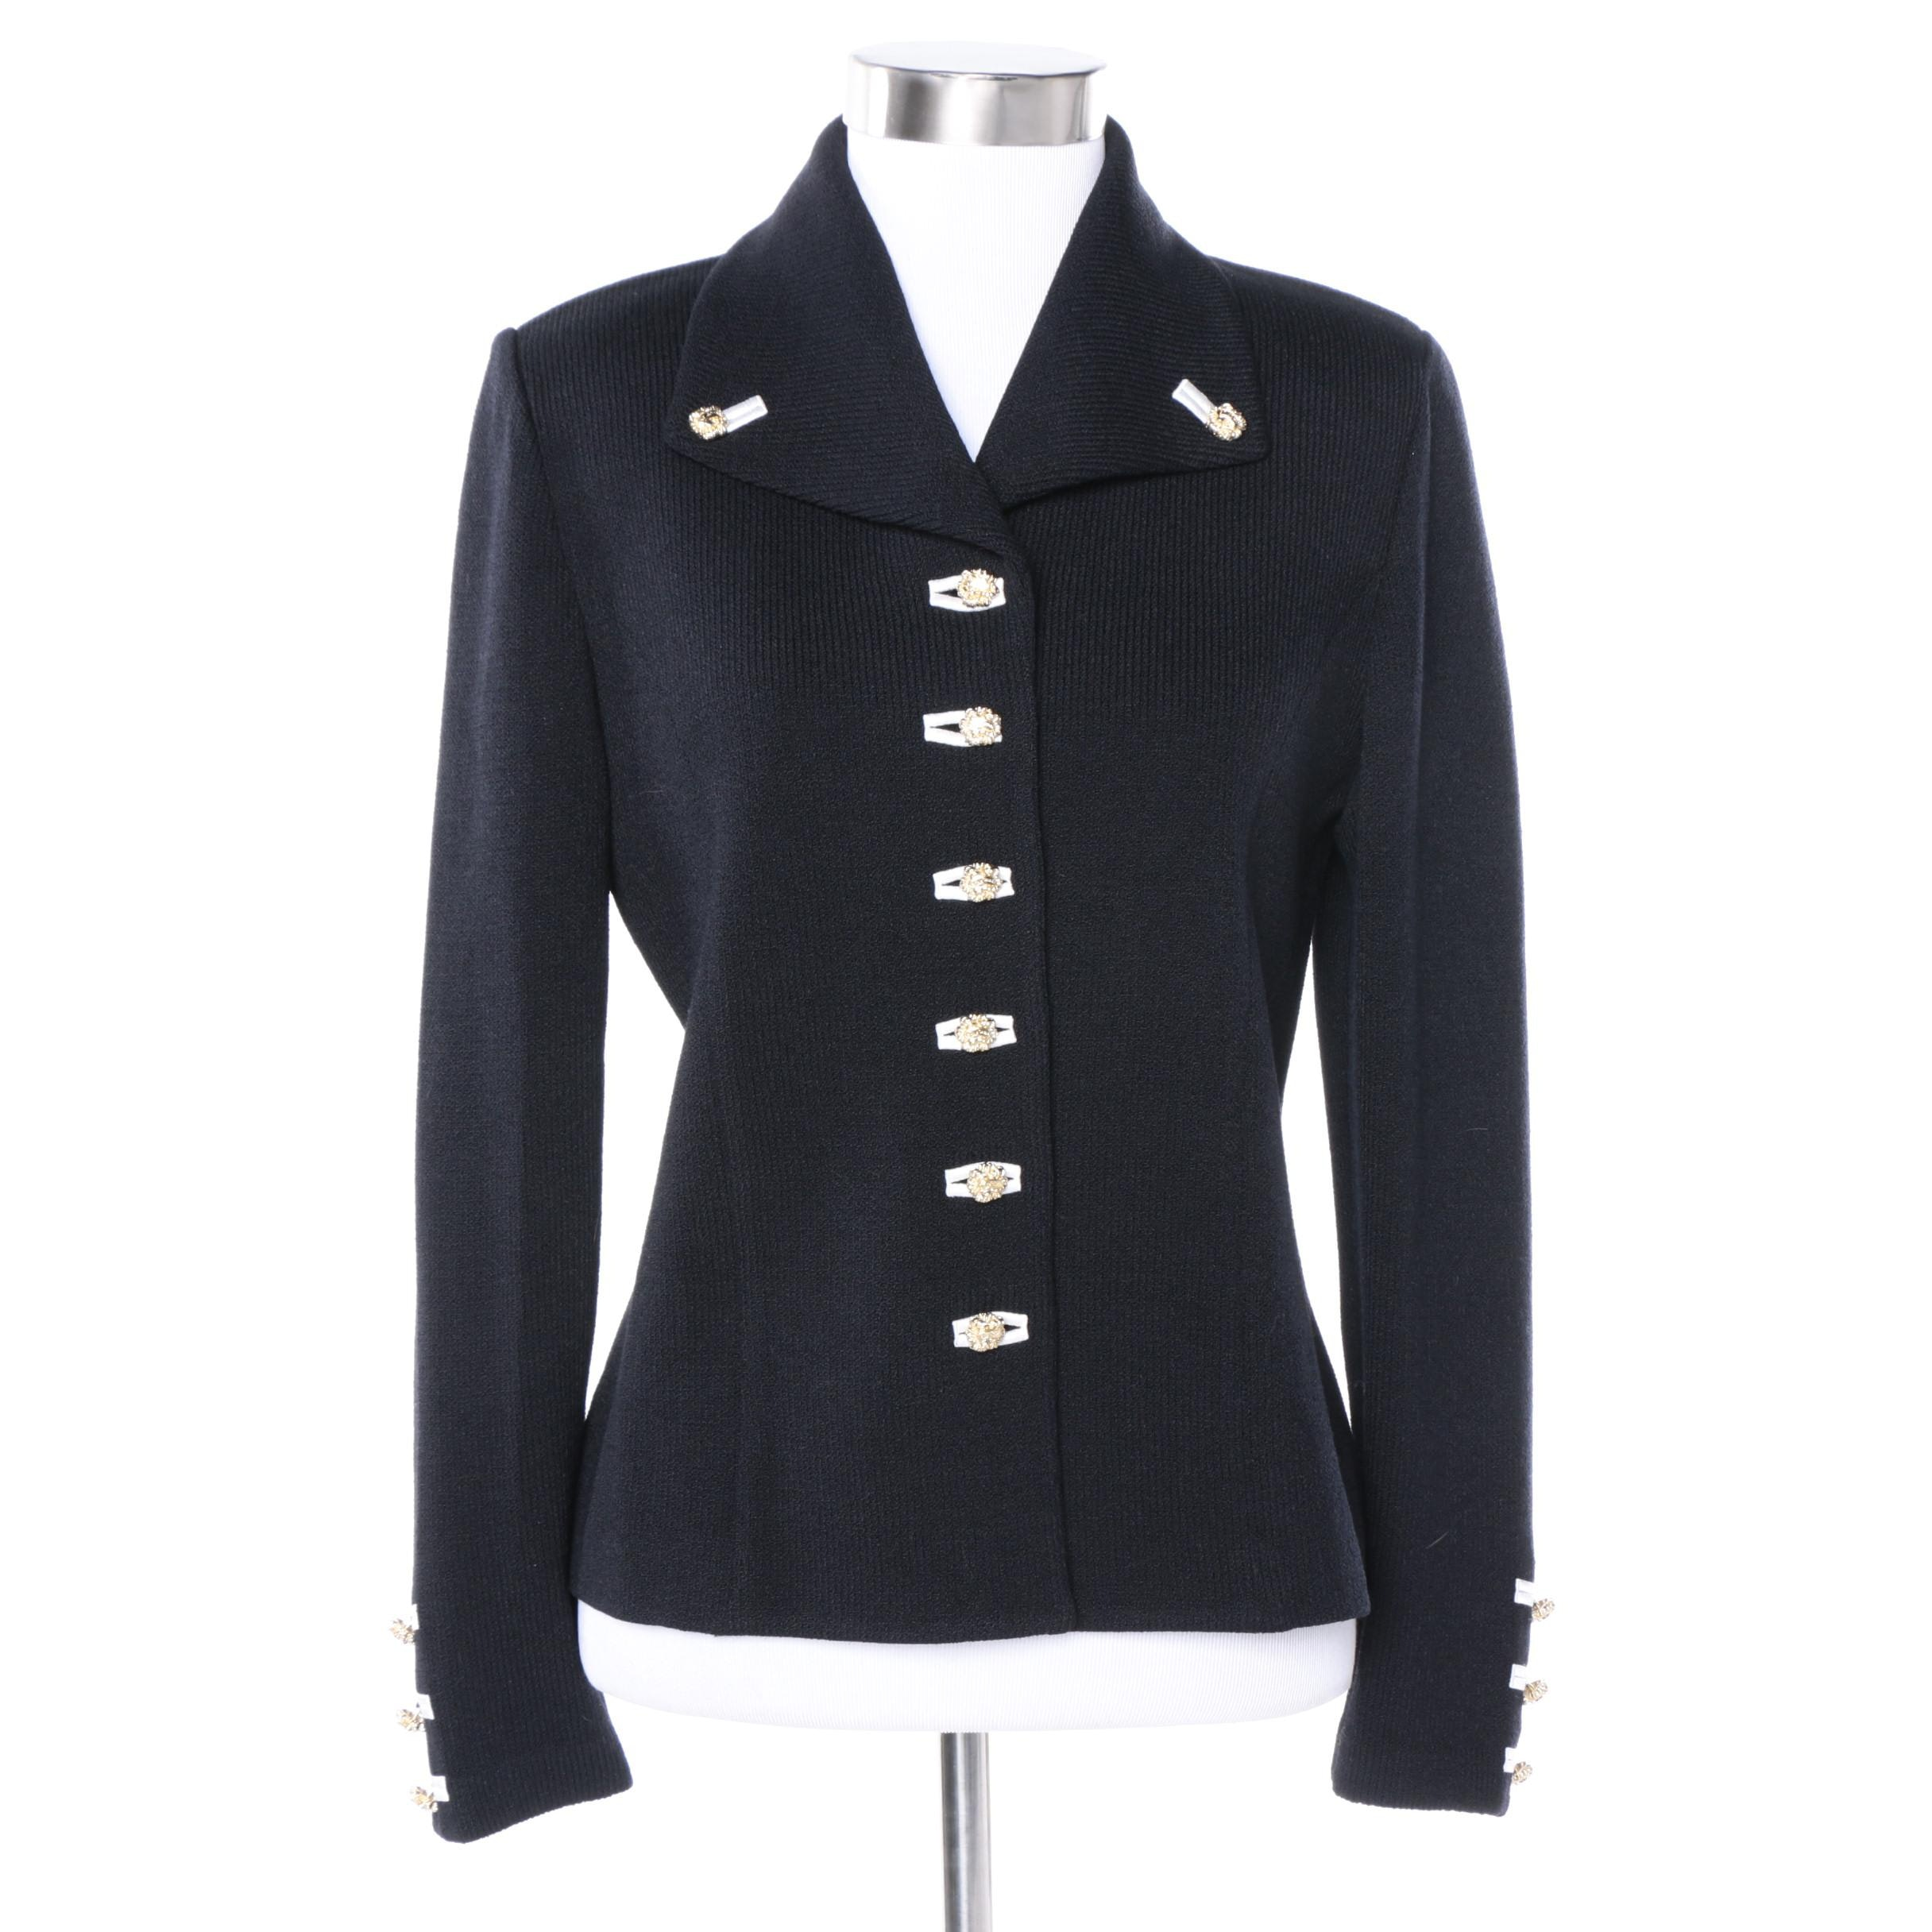 Women's St. John Collection Black Knit Suit Jacket